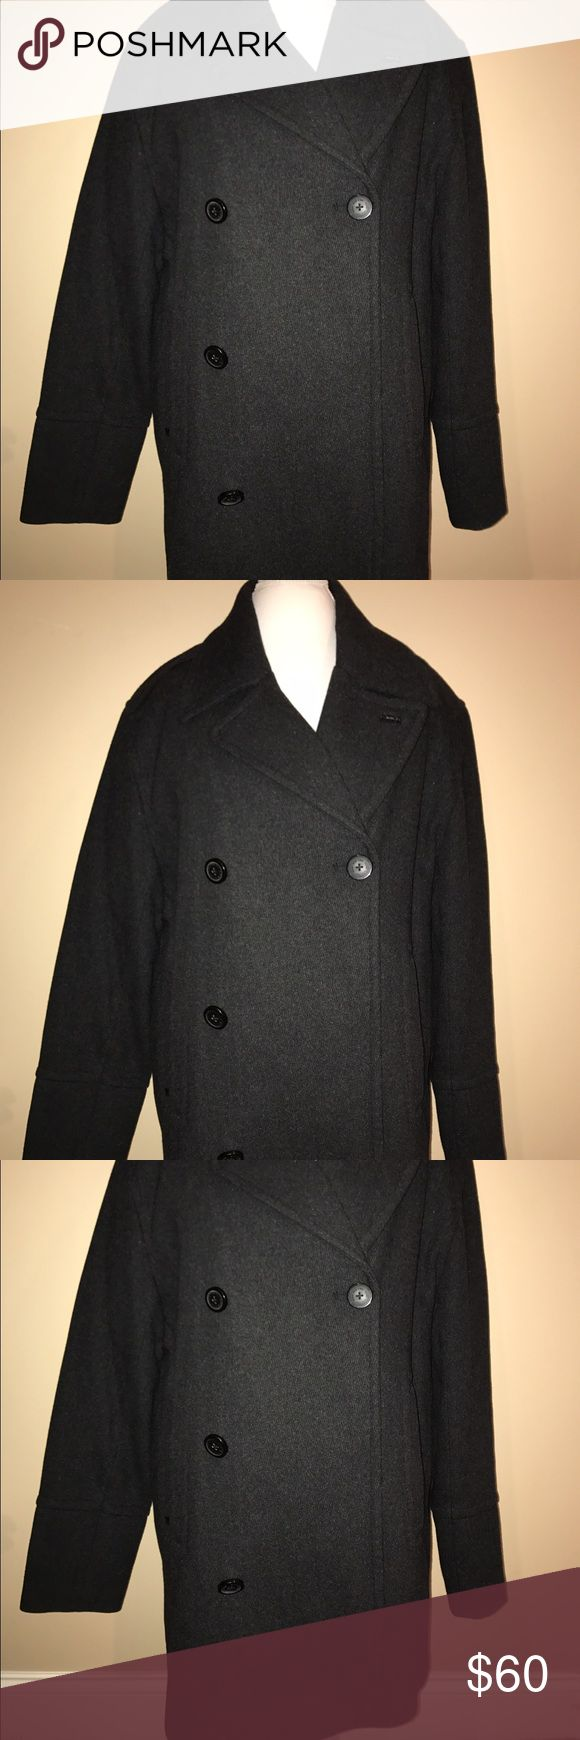 """Gray Men's Marc Jacobs Pea Coat XL WORN ONCE This gorgeous, think, amazing men's pea coat is far beyond """"on sale"""". It was worn once and dry cleaned for sale. The front has luxurious buttons and military style shoulders complete this statement piece. Marc Jacobs Jackets & Coats Pea Coats"""